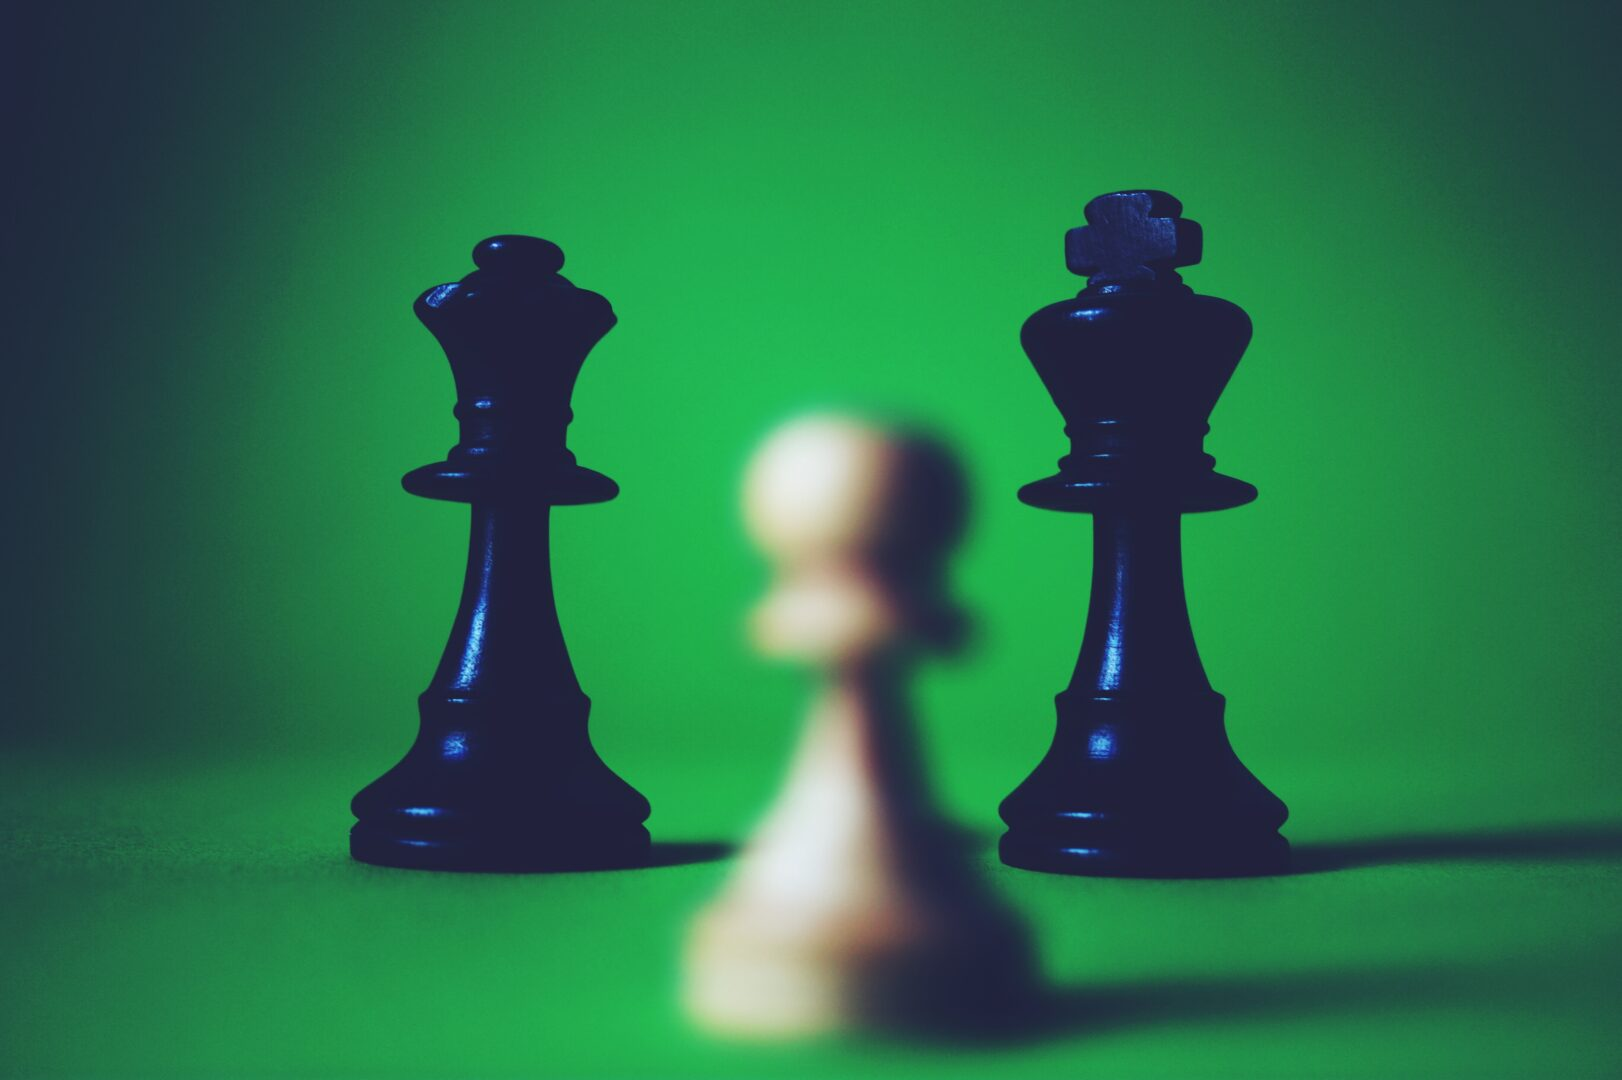 chess-chess-pieces-depth-of-field-136350